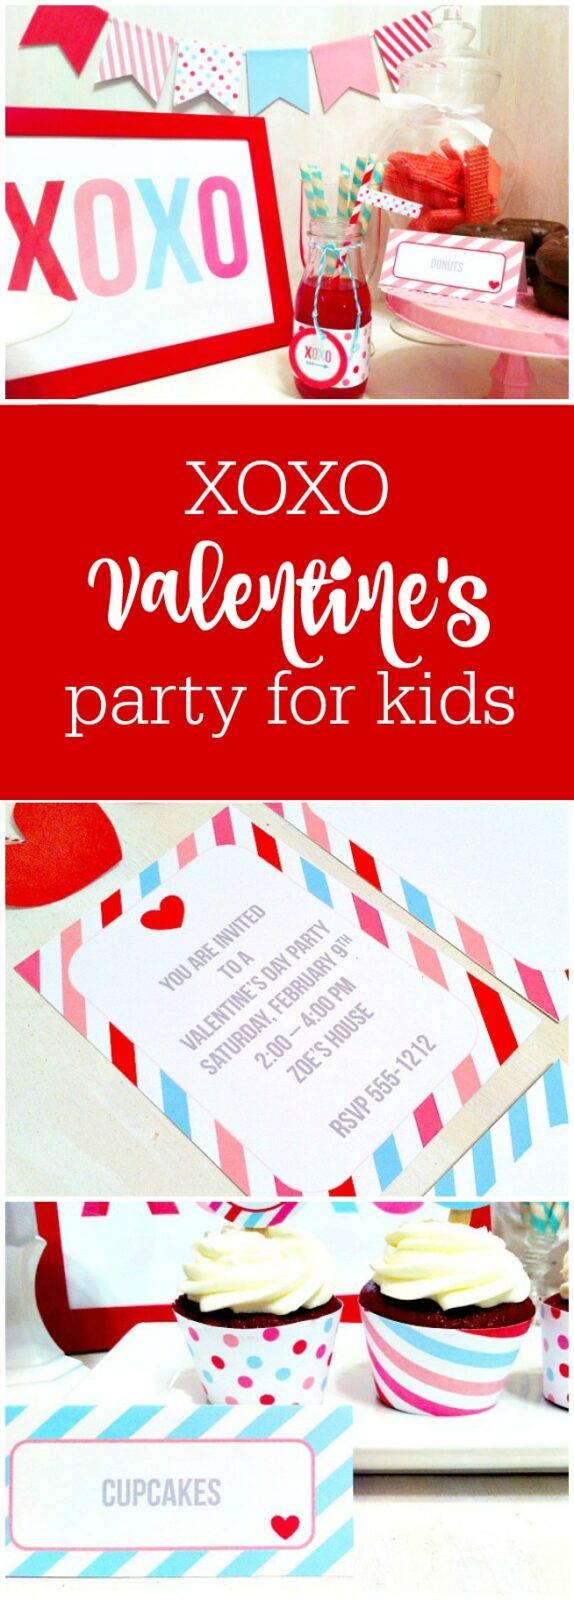 XOXO Valentine's Day Party for kids by Cupcake Wishes and Birthday Dreams featured on The Party Teacher